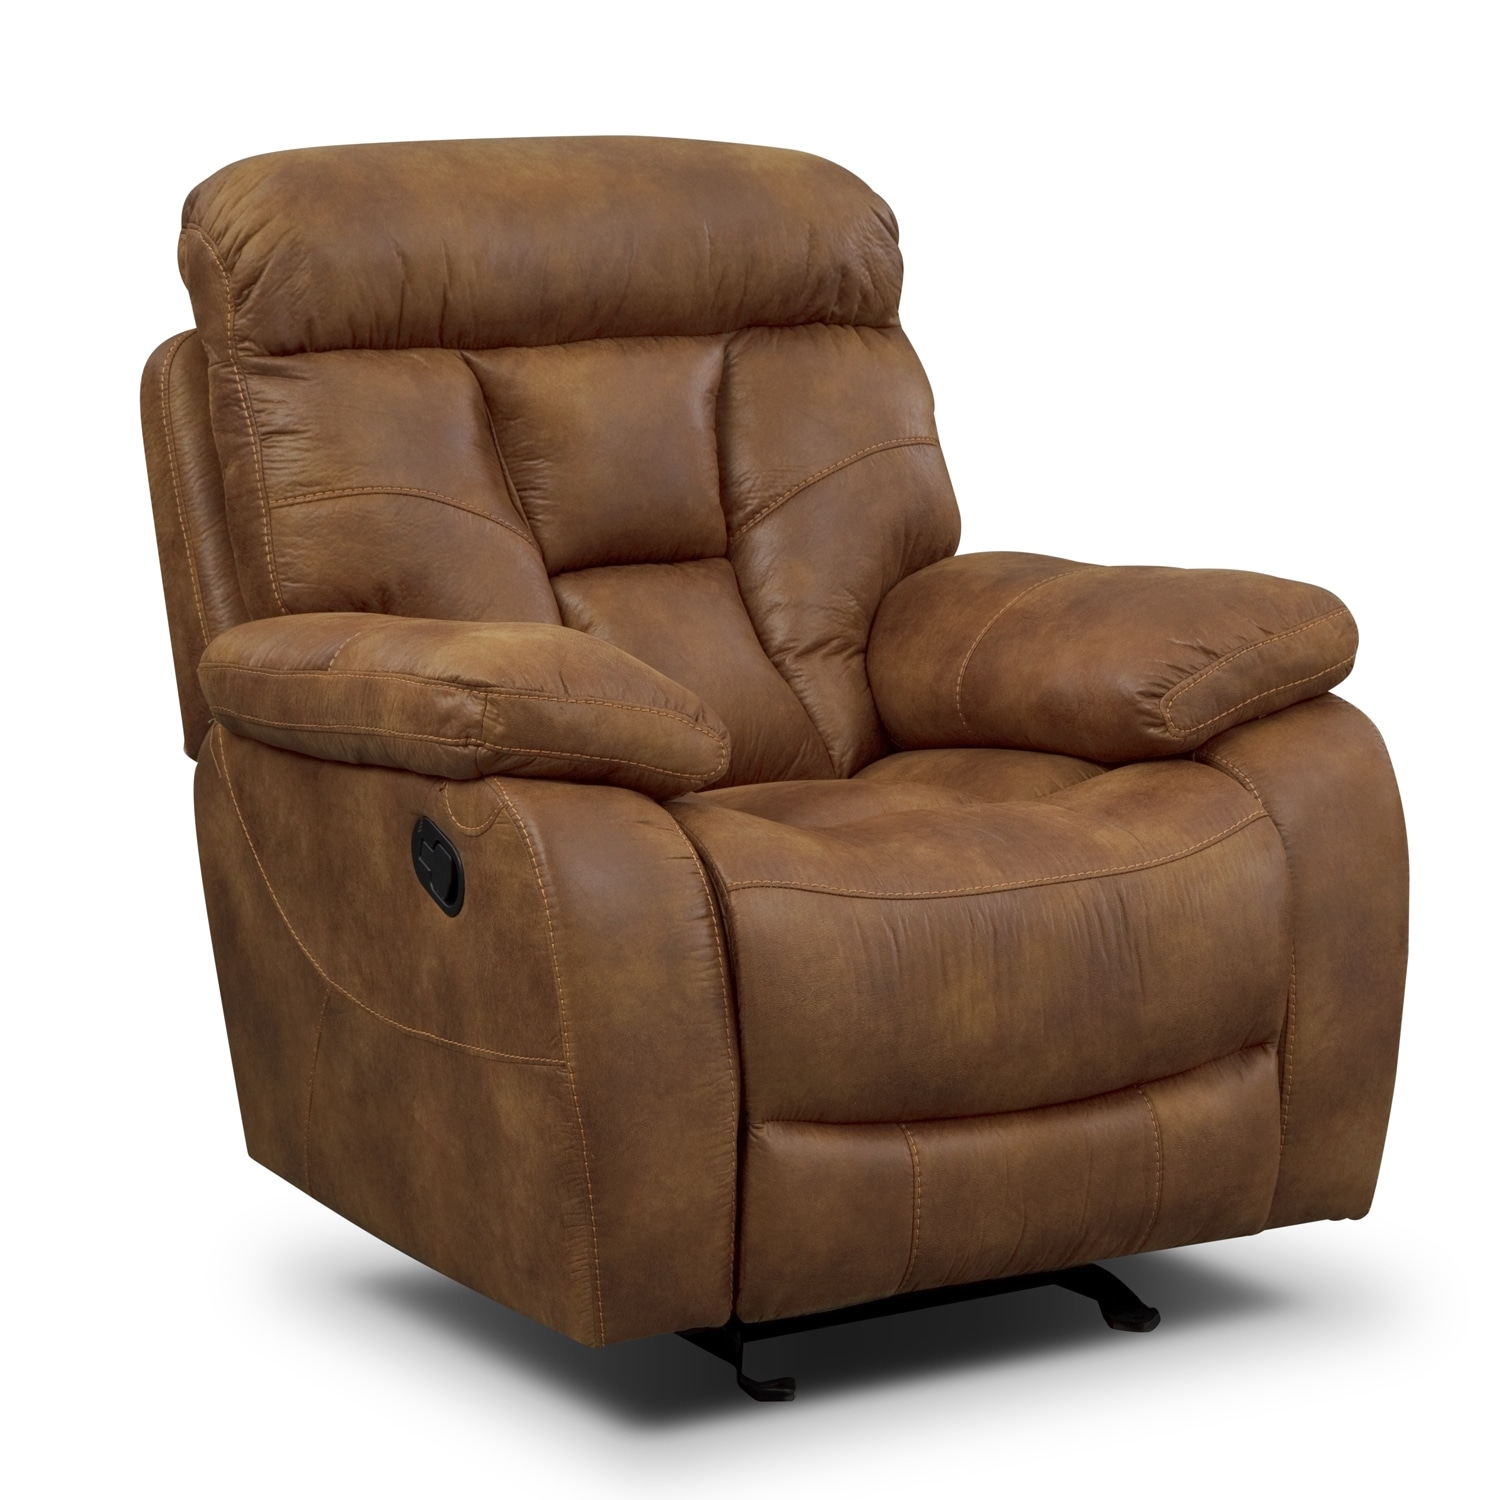 Dakota Glider Recliner - Almond